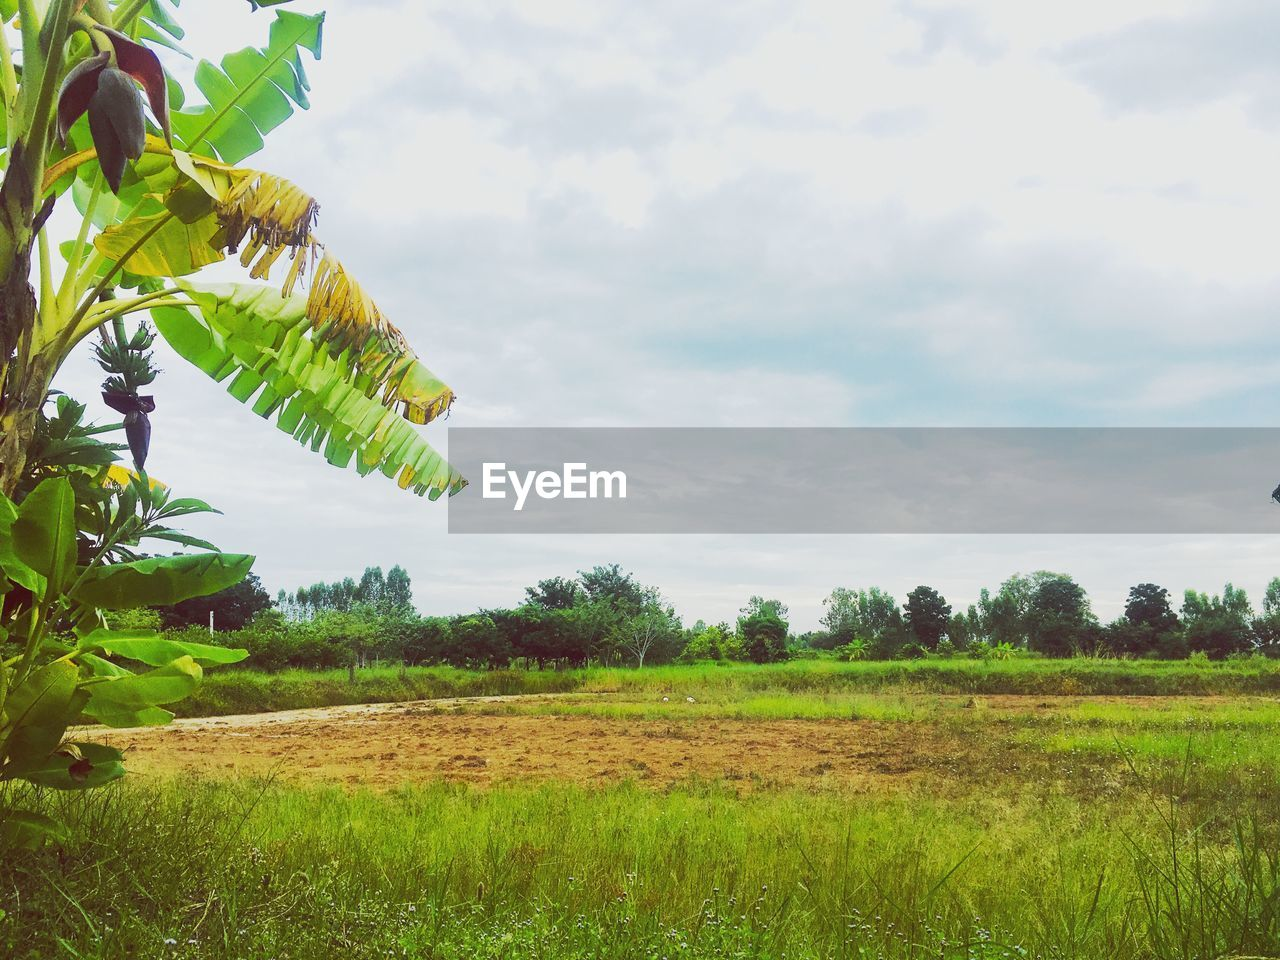 plant, sky, field, land, green color, environment, nature, landscape, tree, day, cloud - sky, growth, beauty in nature, tranquility, no people, grass, rural scene, outdoors, agriculture, scenics - nature